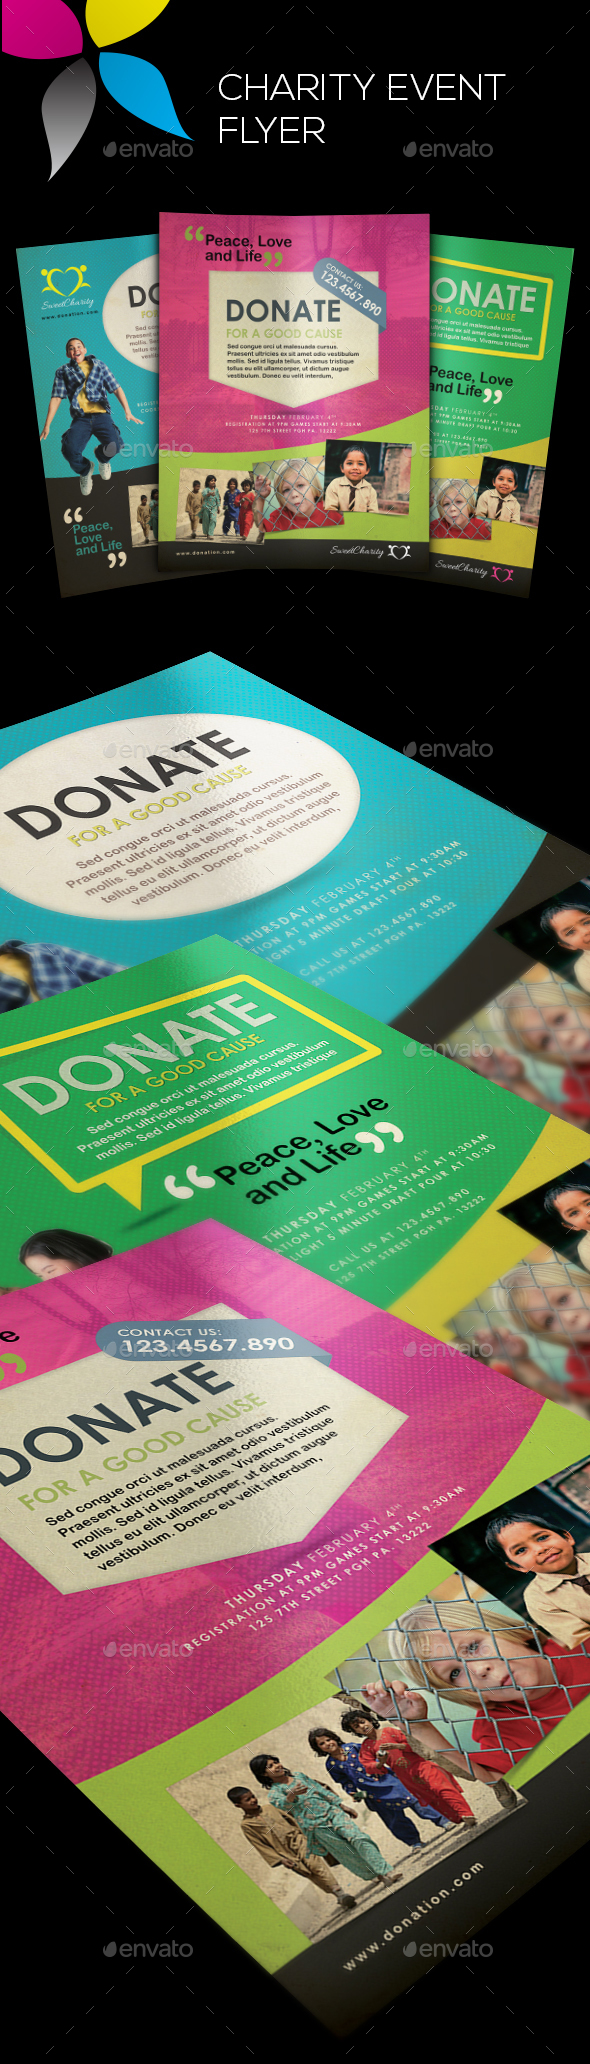 Charity Event Flyers - Corporate Flyers